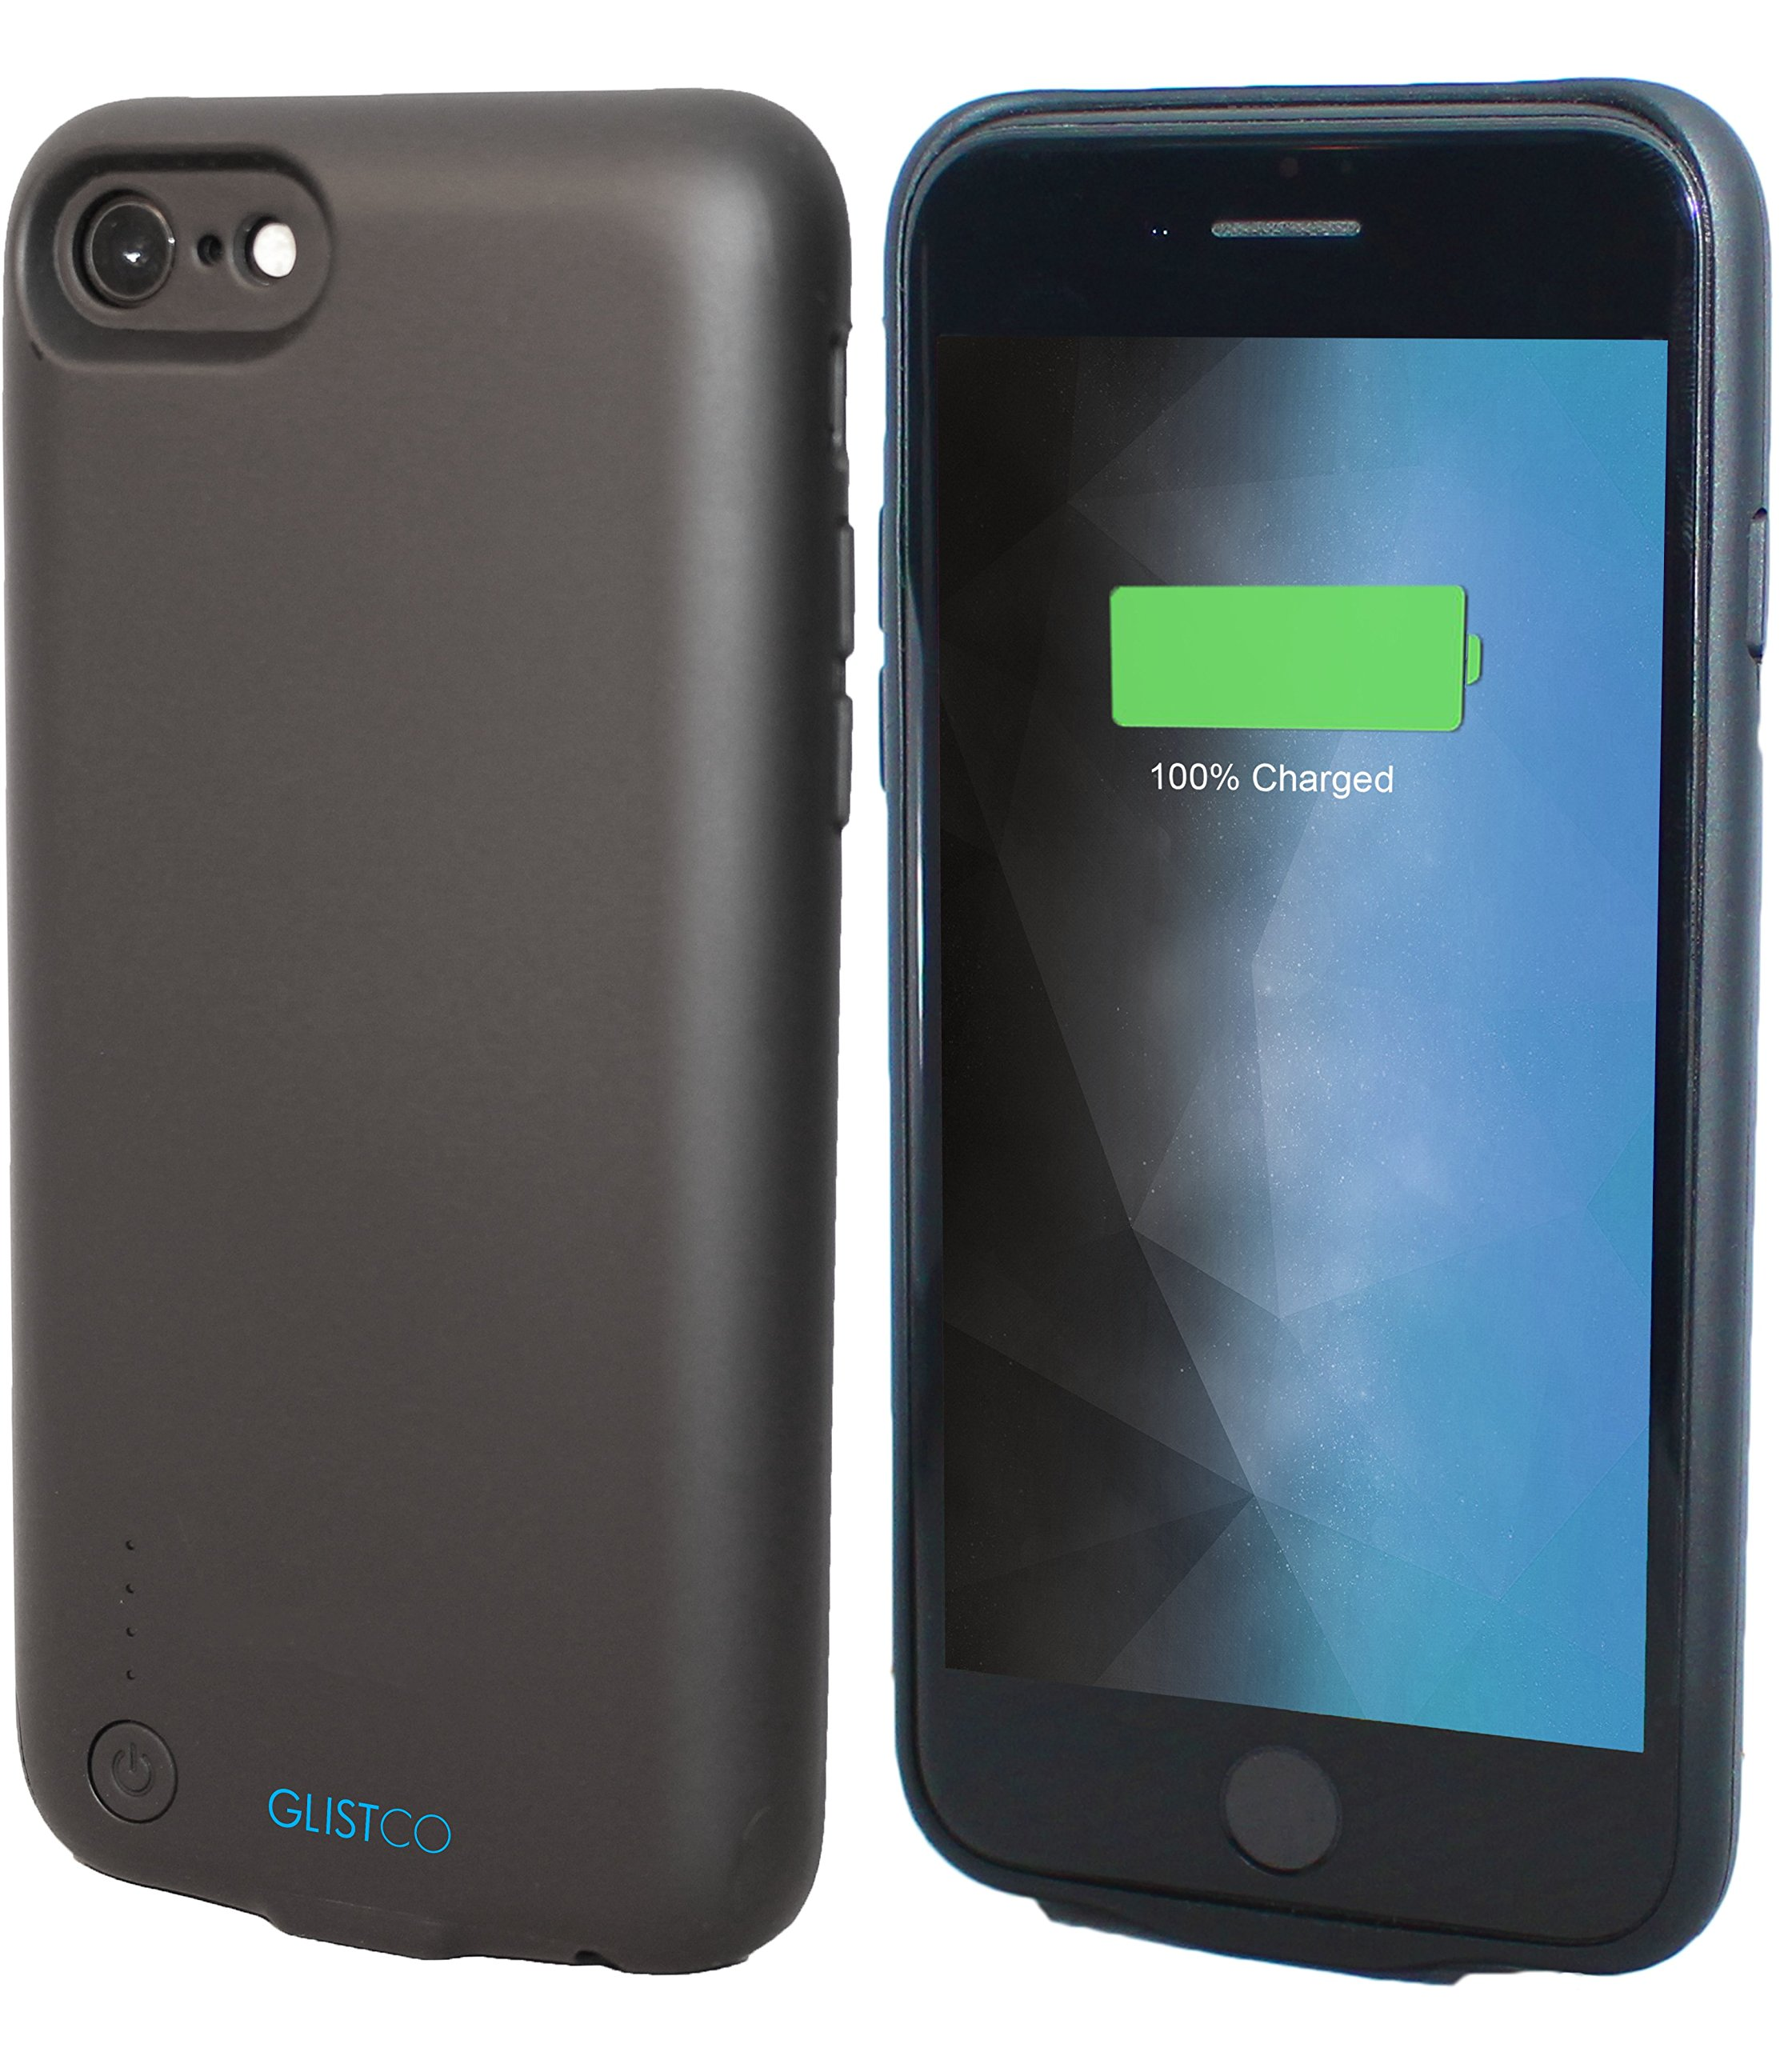 Glistco iPhone 7 & iPhone 8 Battery Case with 3.5mm Headphone Jack